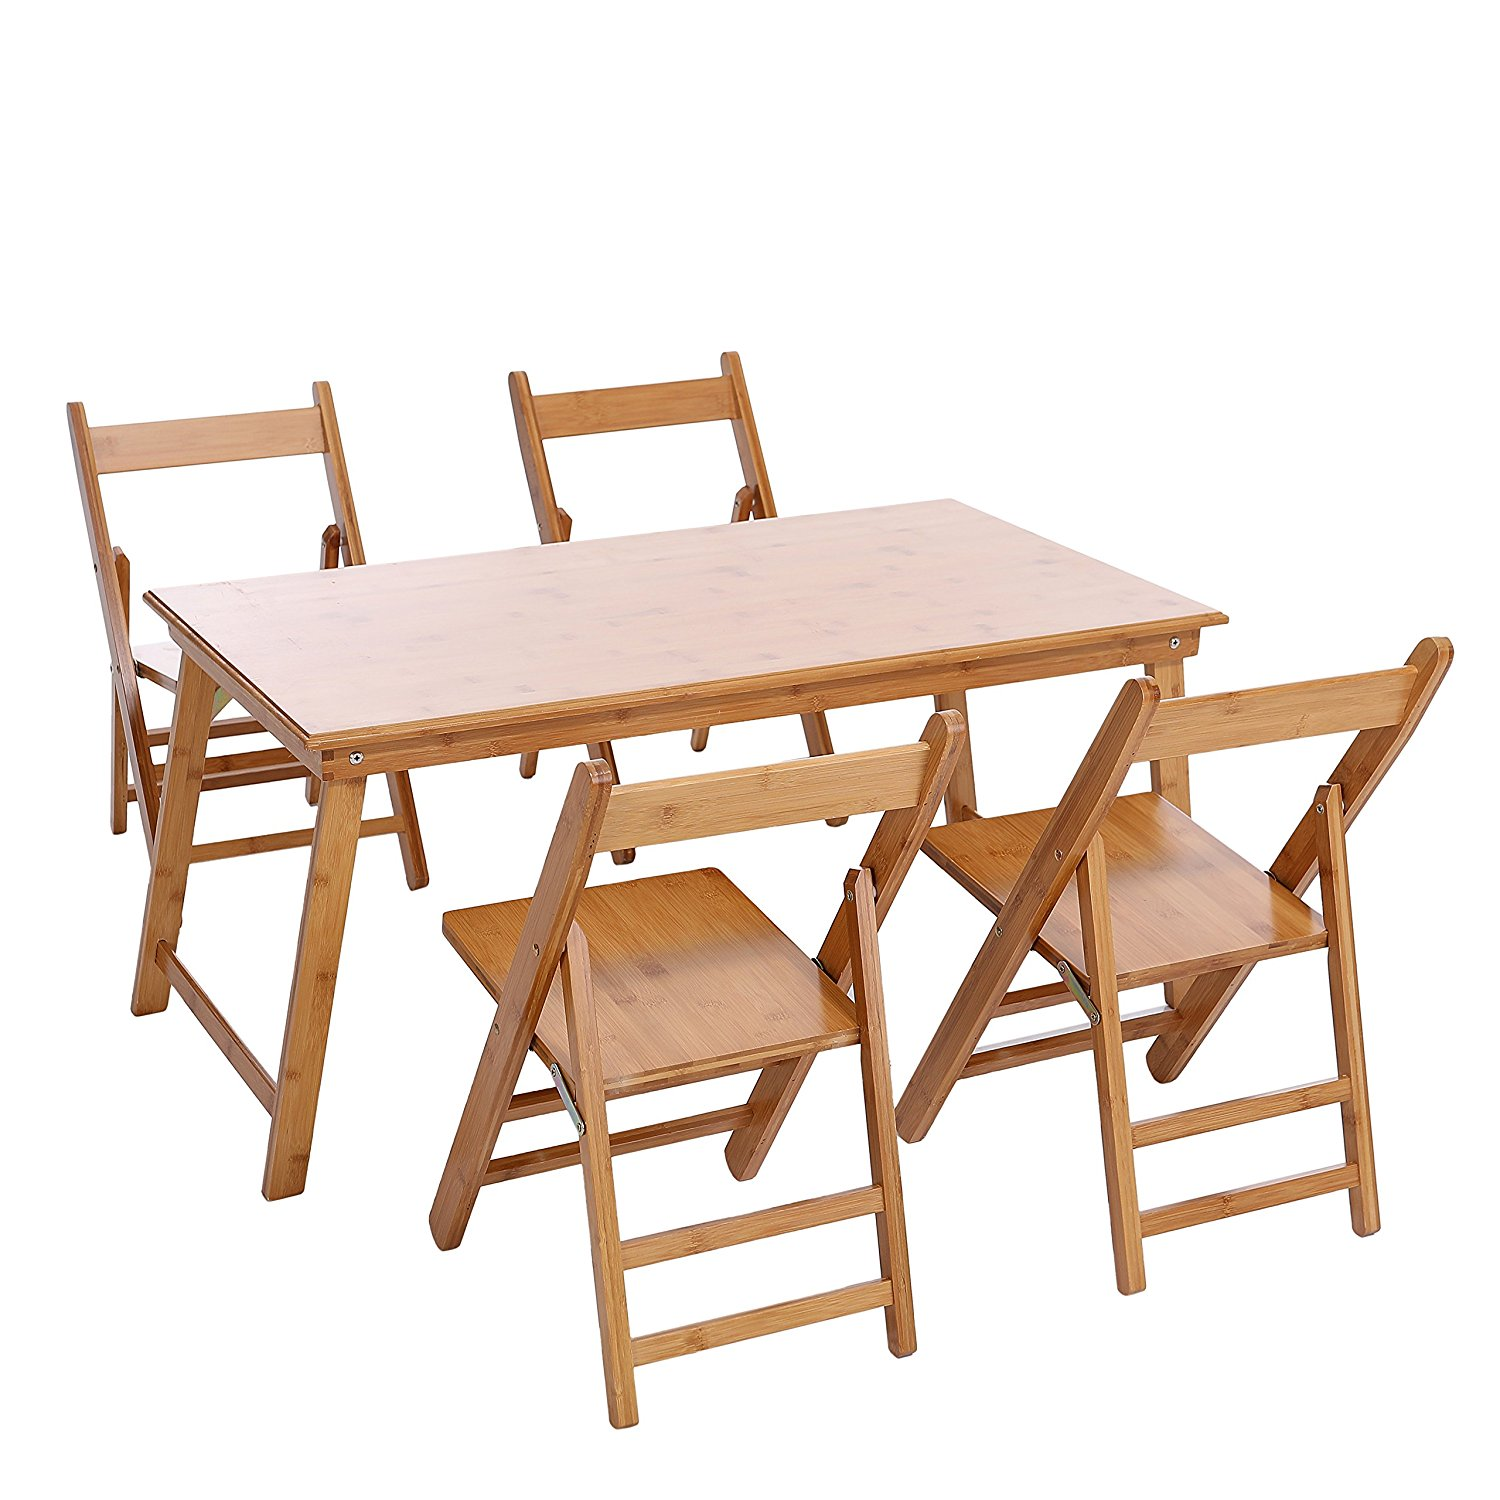 Pleasing Buy Unicoo Bamboo Rectangular Folding Table With 4 Folding Machost Co Dining Chair Design Ideas Machostcouk